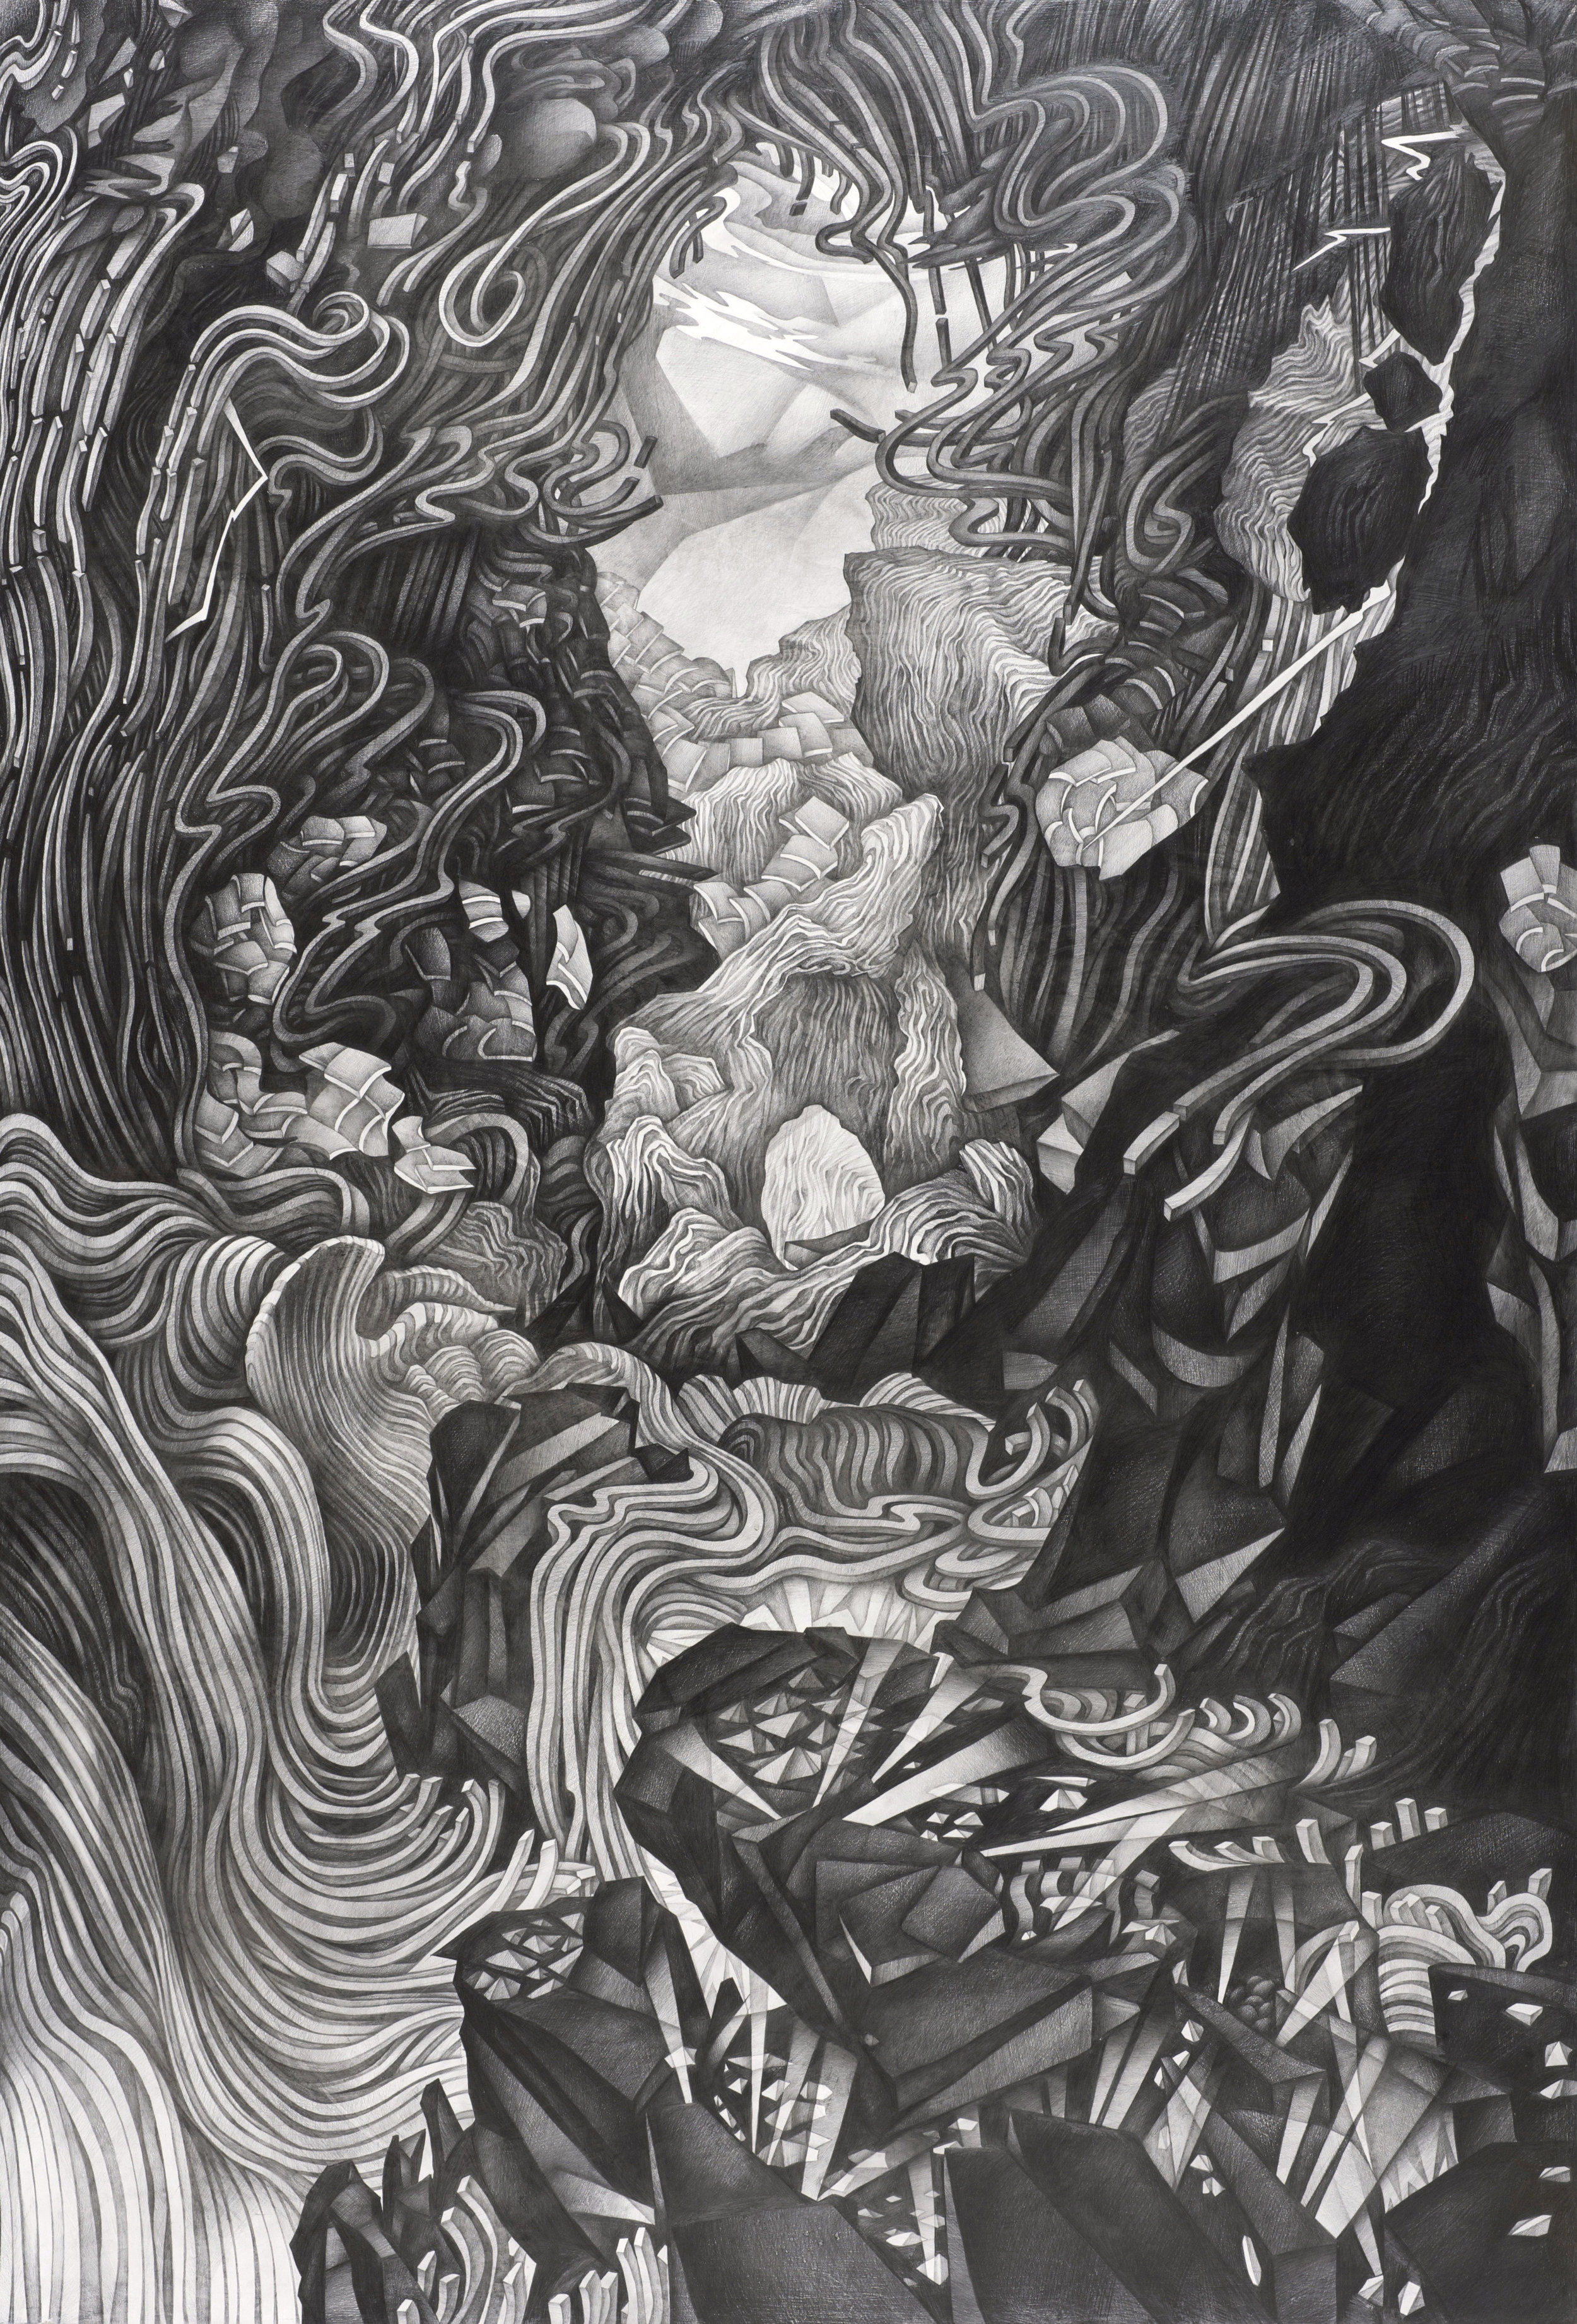 Disassembling Landscape II , 2013 Graphite on panel 72 x 49 inches